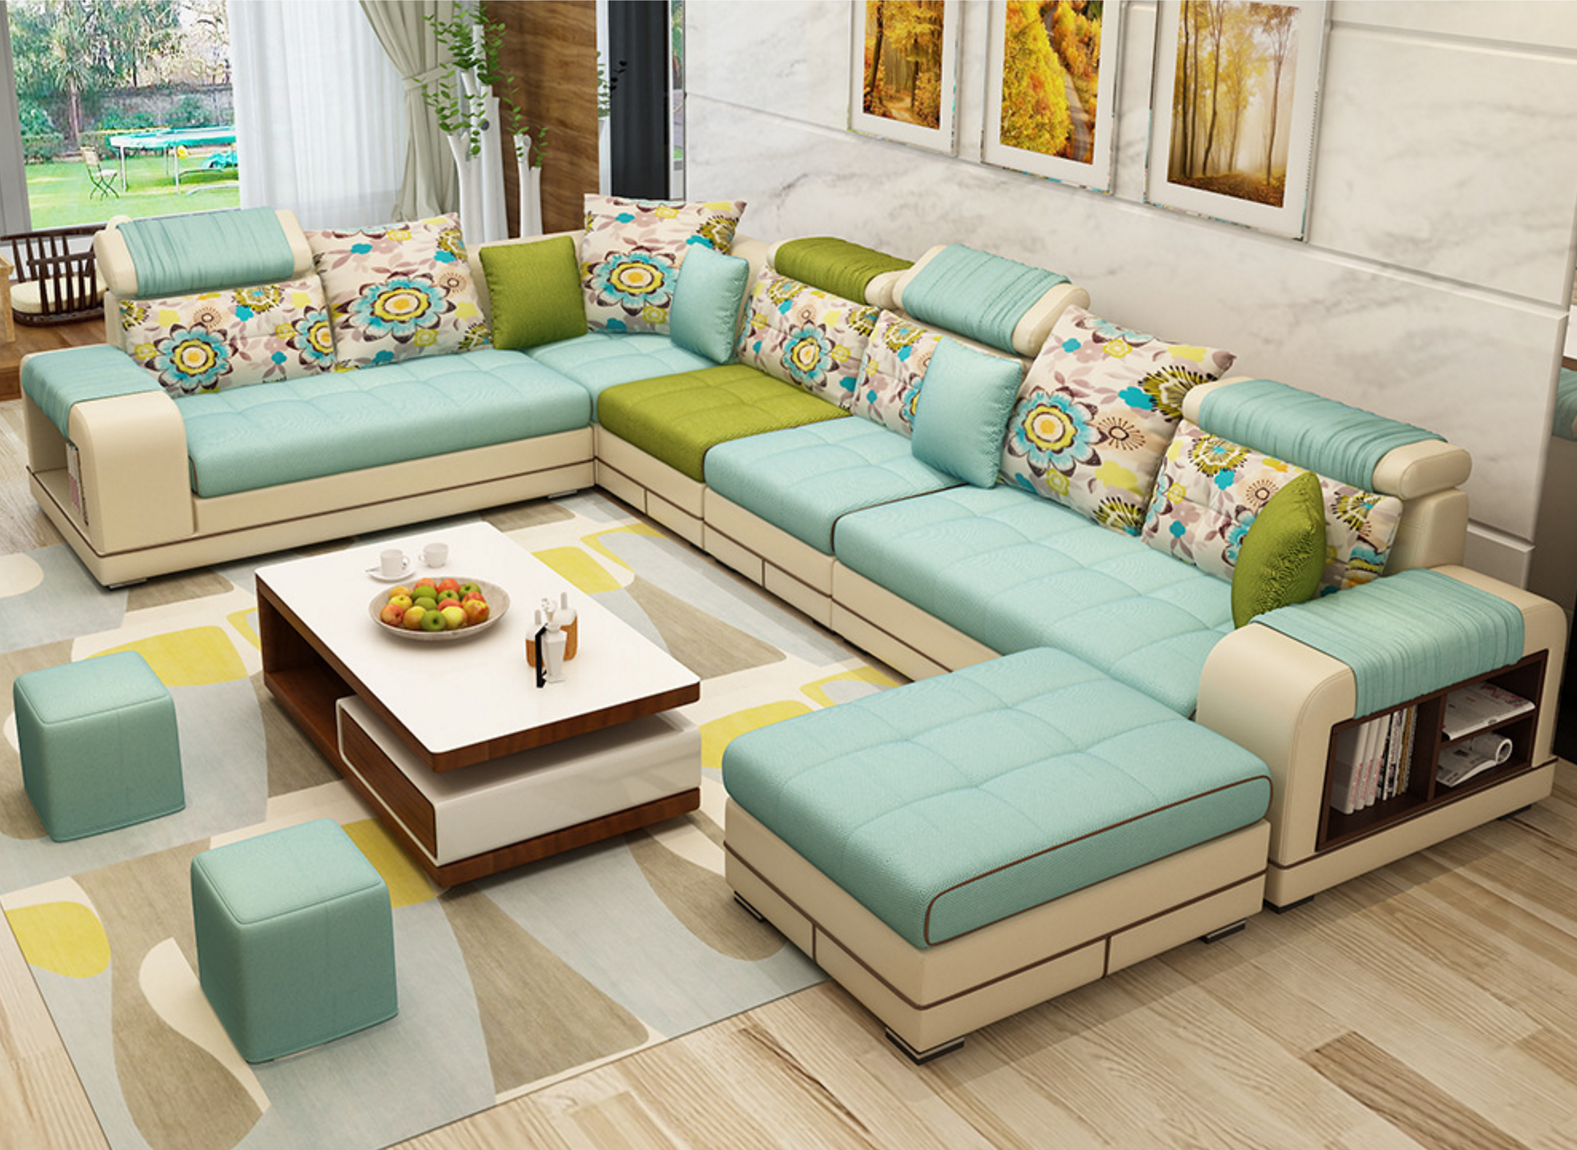 Luxury Modern U Shaped Leather Fabric Corner Sectional Sofa Set Design Couches For Living Room With O Corner Sectional Sofa Sofa Set Designs Corner Sofa Design #sofa #set #design #for #living #room